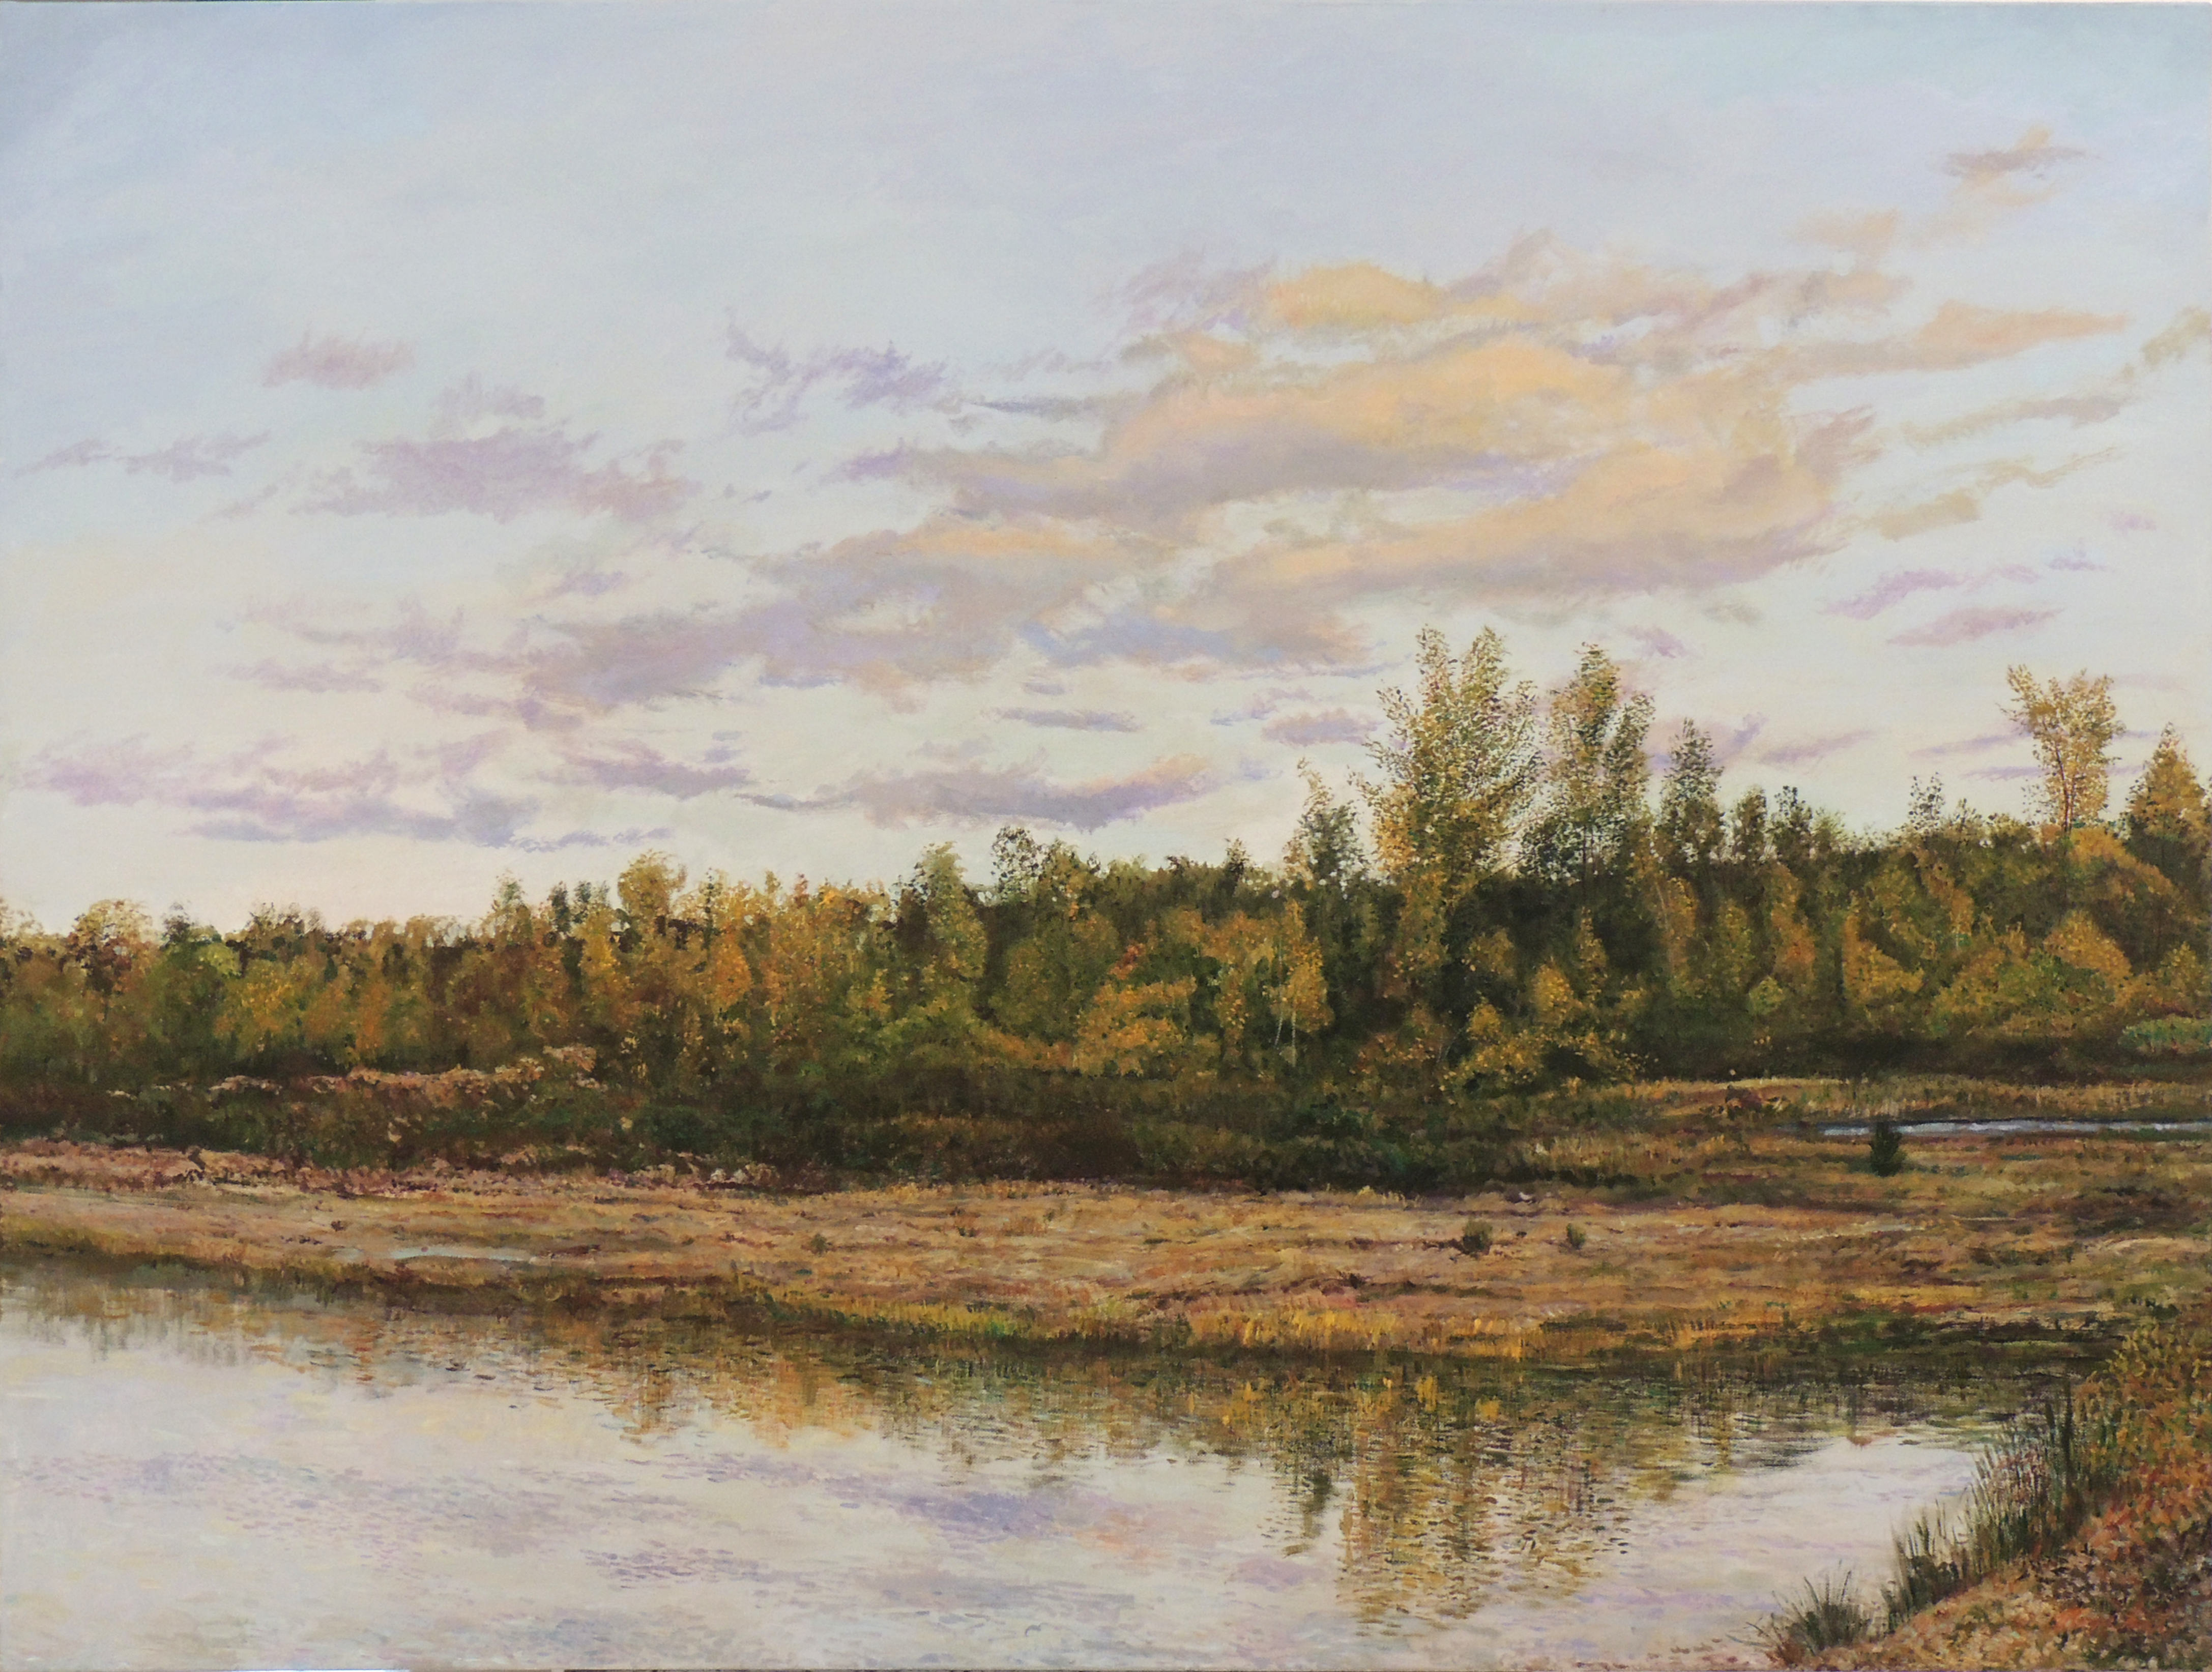 Roger Smith | EARLY AUTUMN AT OAKS QUARRY | Oil on Canvas